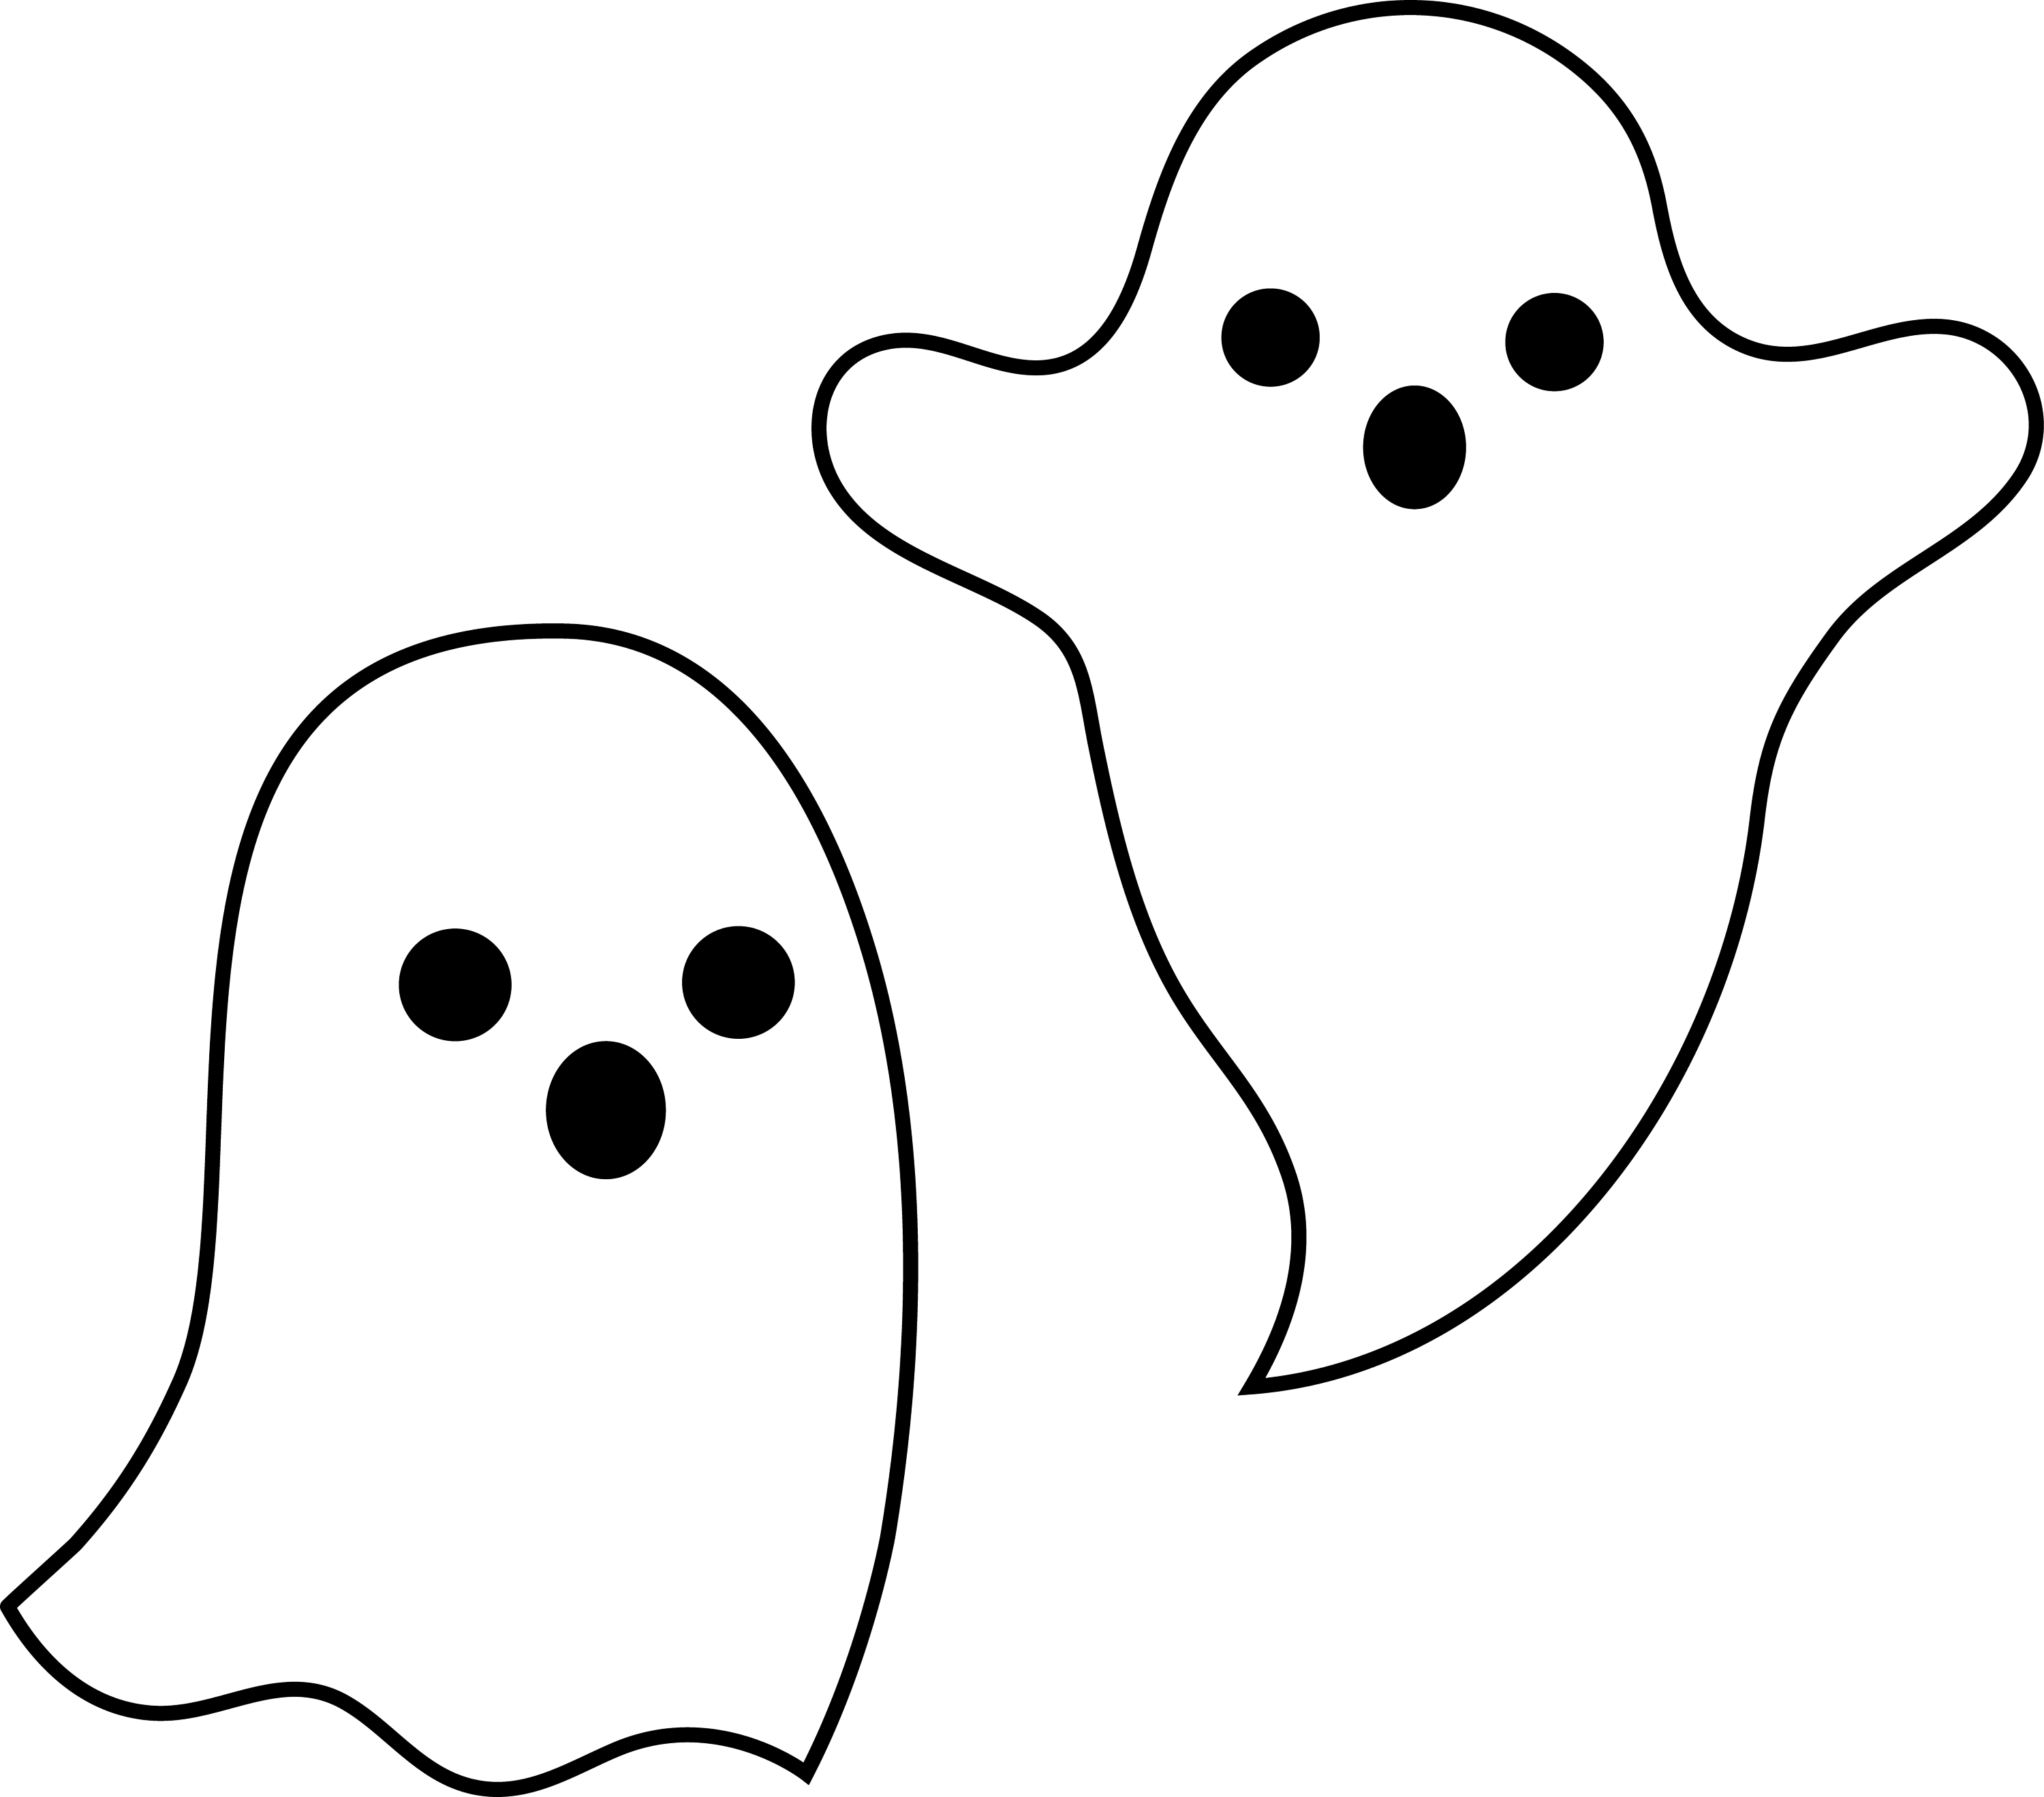 Simple Spooky Halloween GhostsCartoon Halloween Ghosts